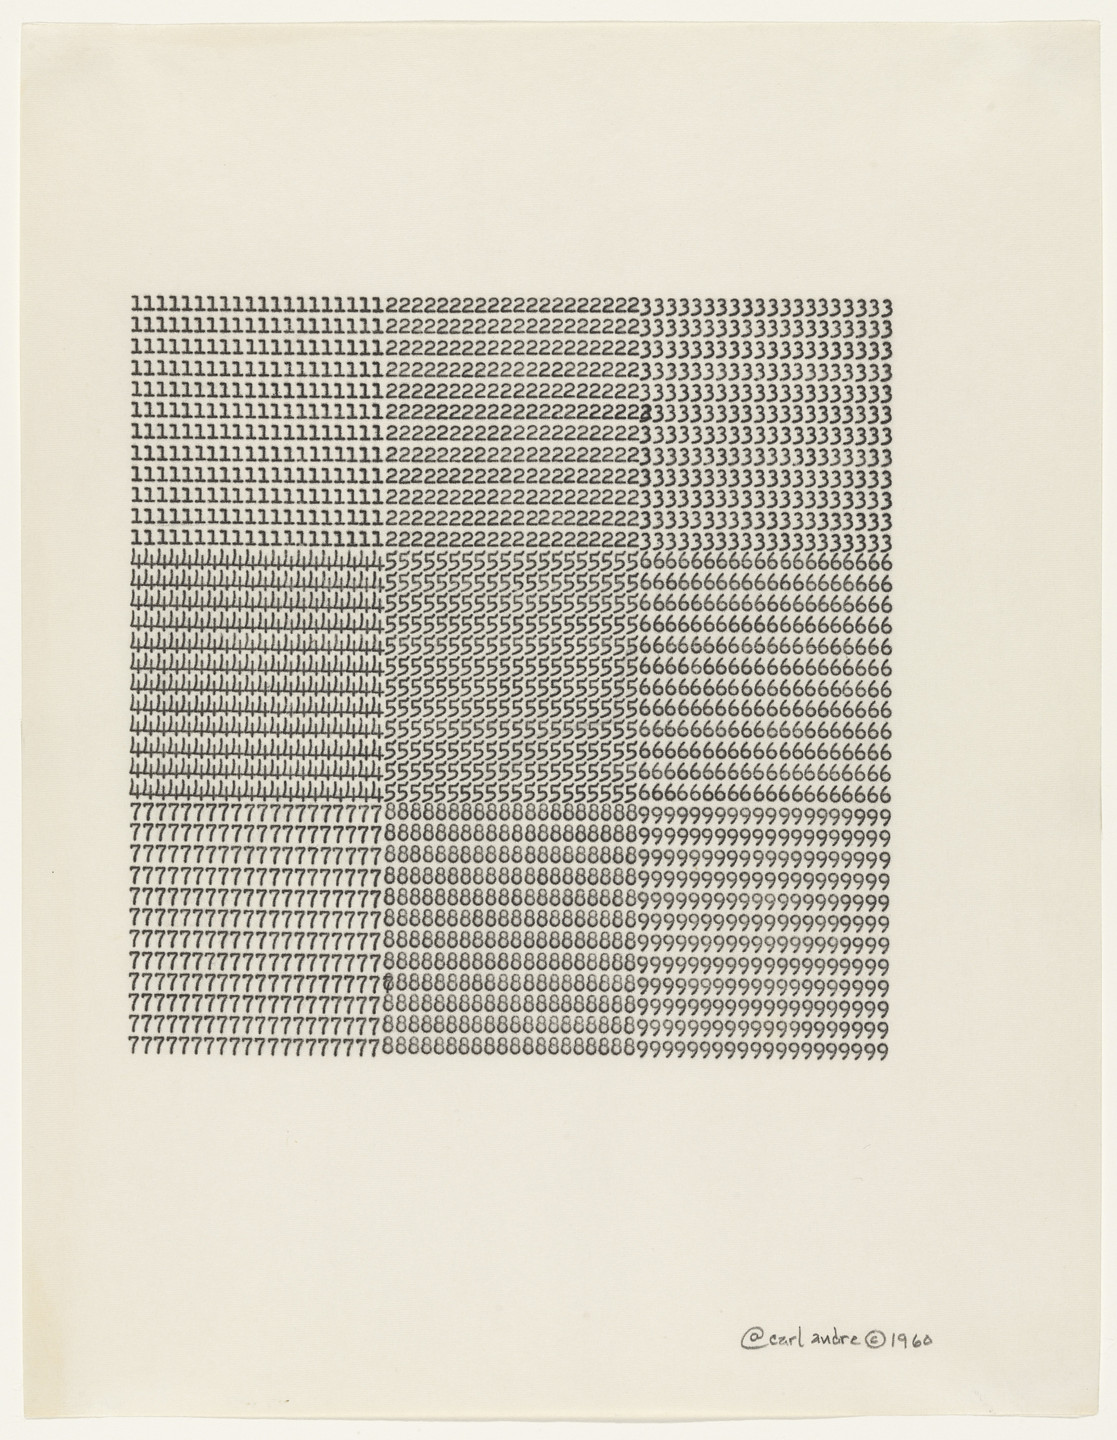 Carl Andre. Untitled. 1960